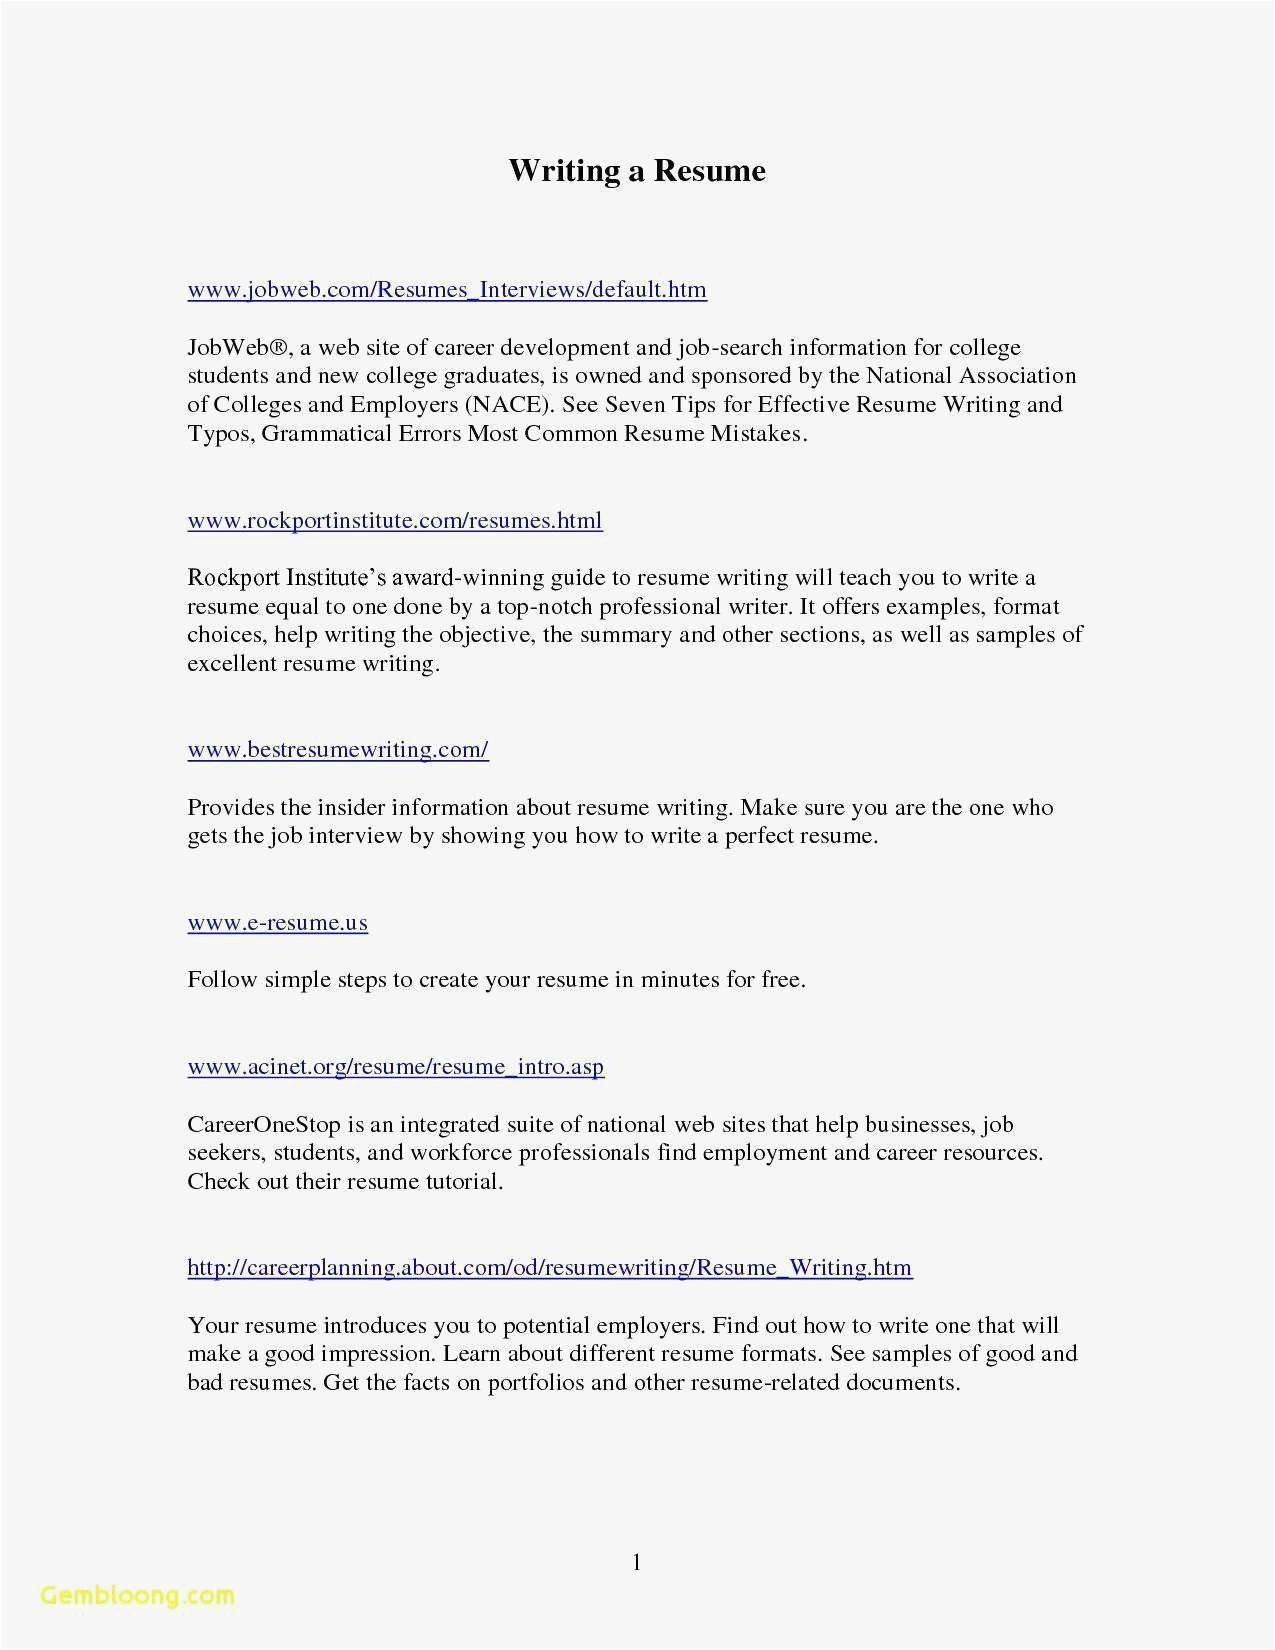 Supply Chain Manager Resume 95 Supply Chain Cover Letter Examples Cover Letter For Cover Letter For Resume Resume Writing Resume Writing Services